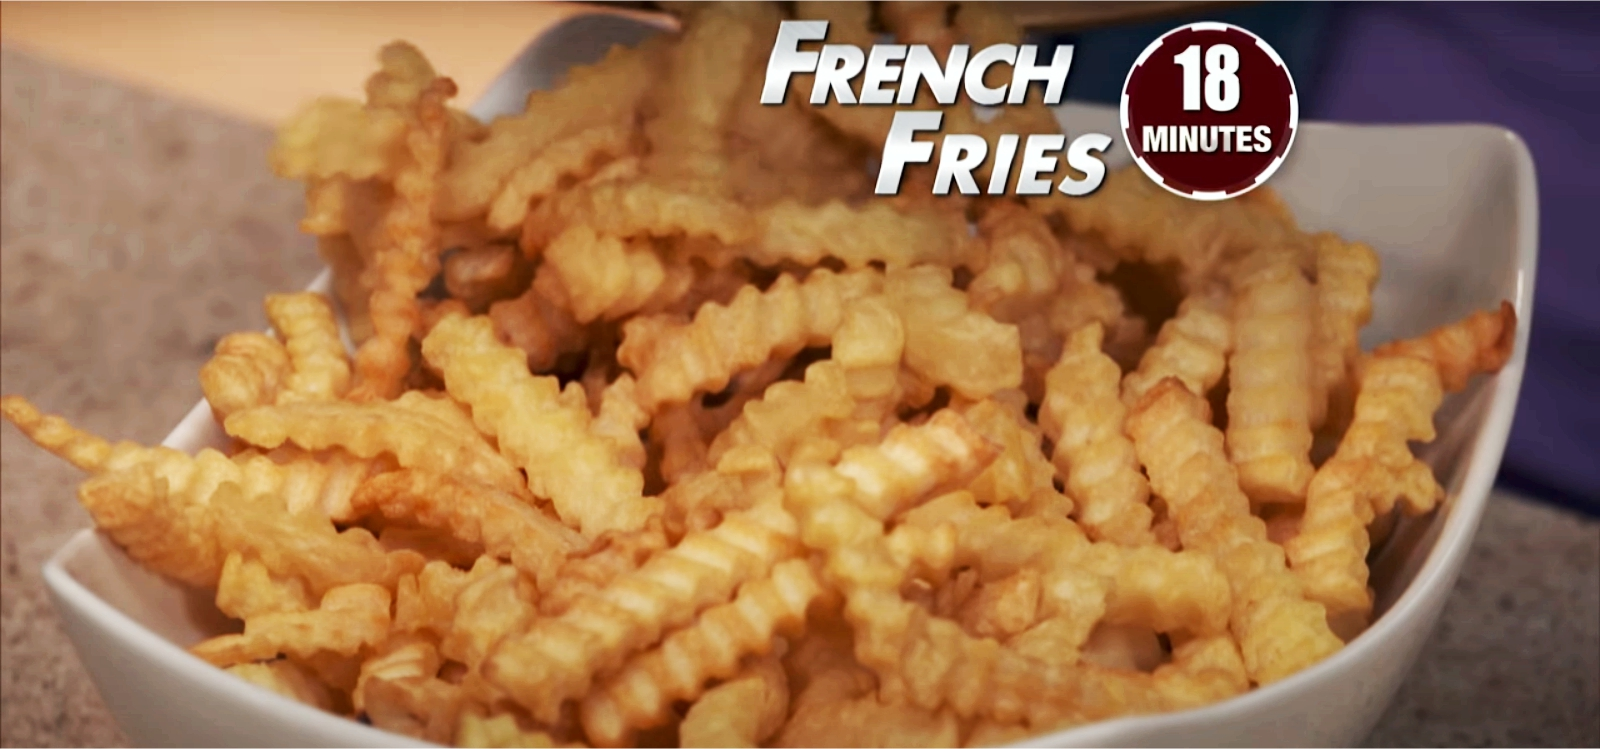 french fries made from power air fryer